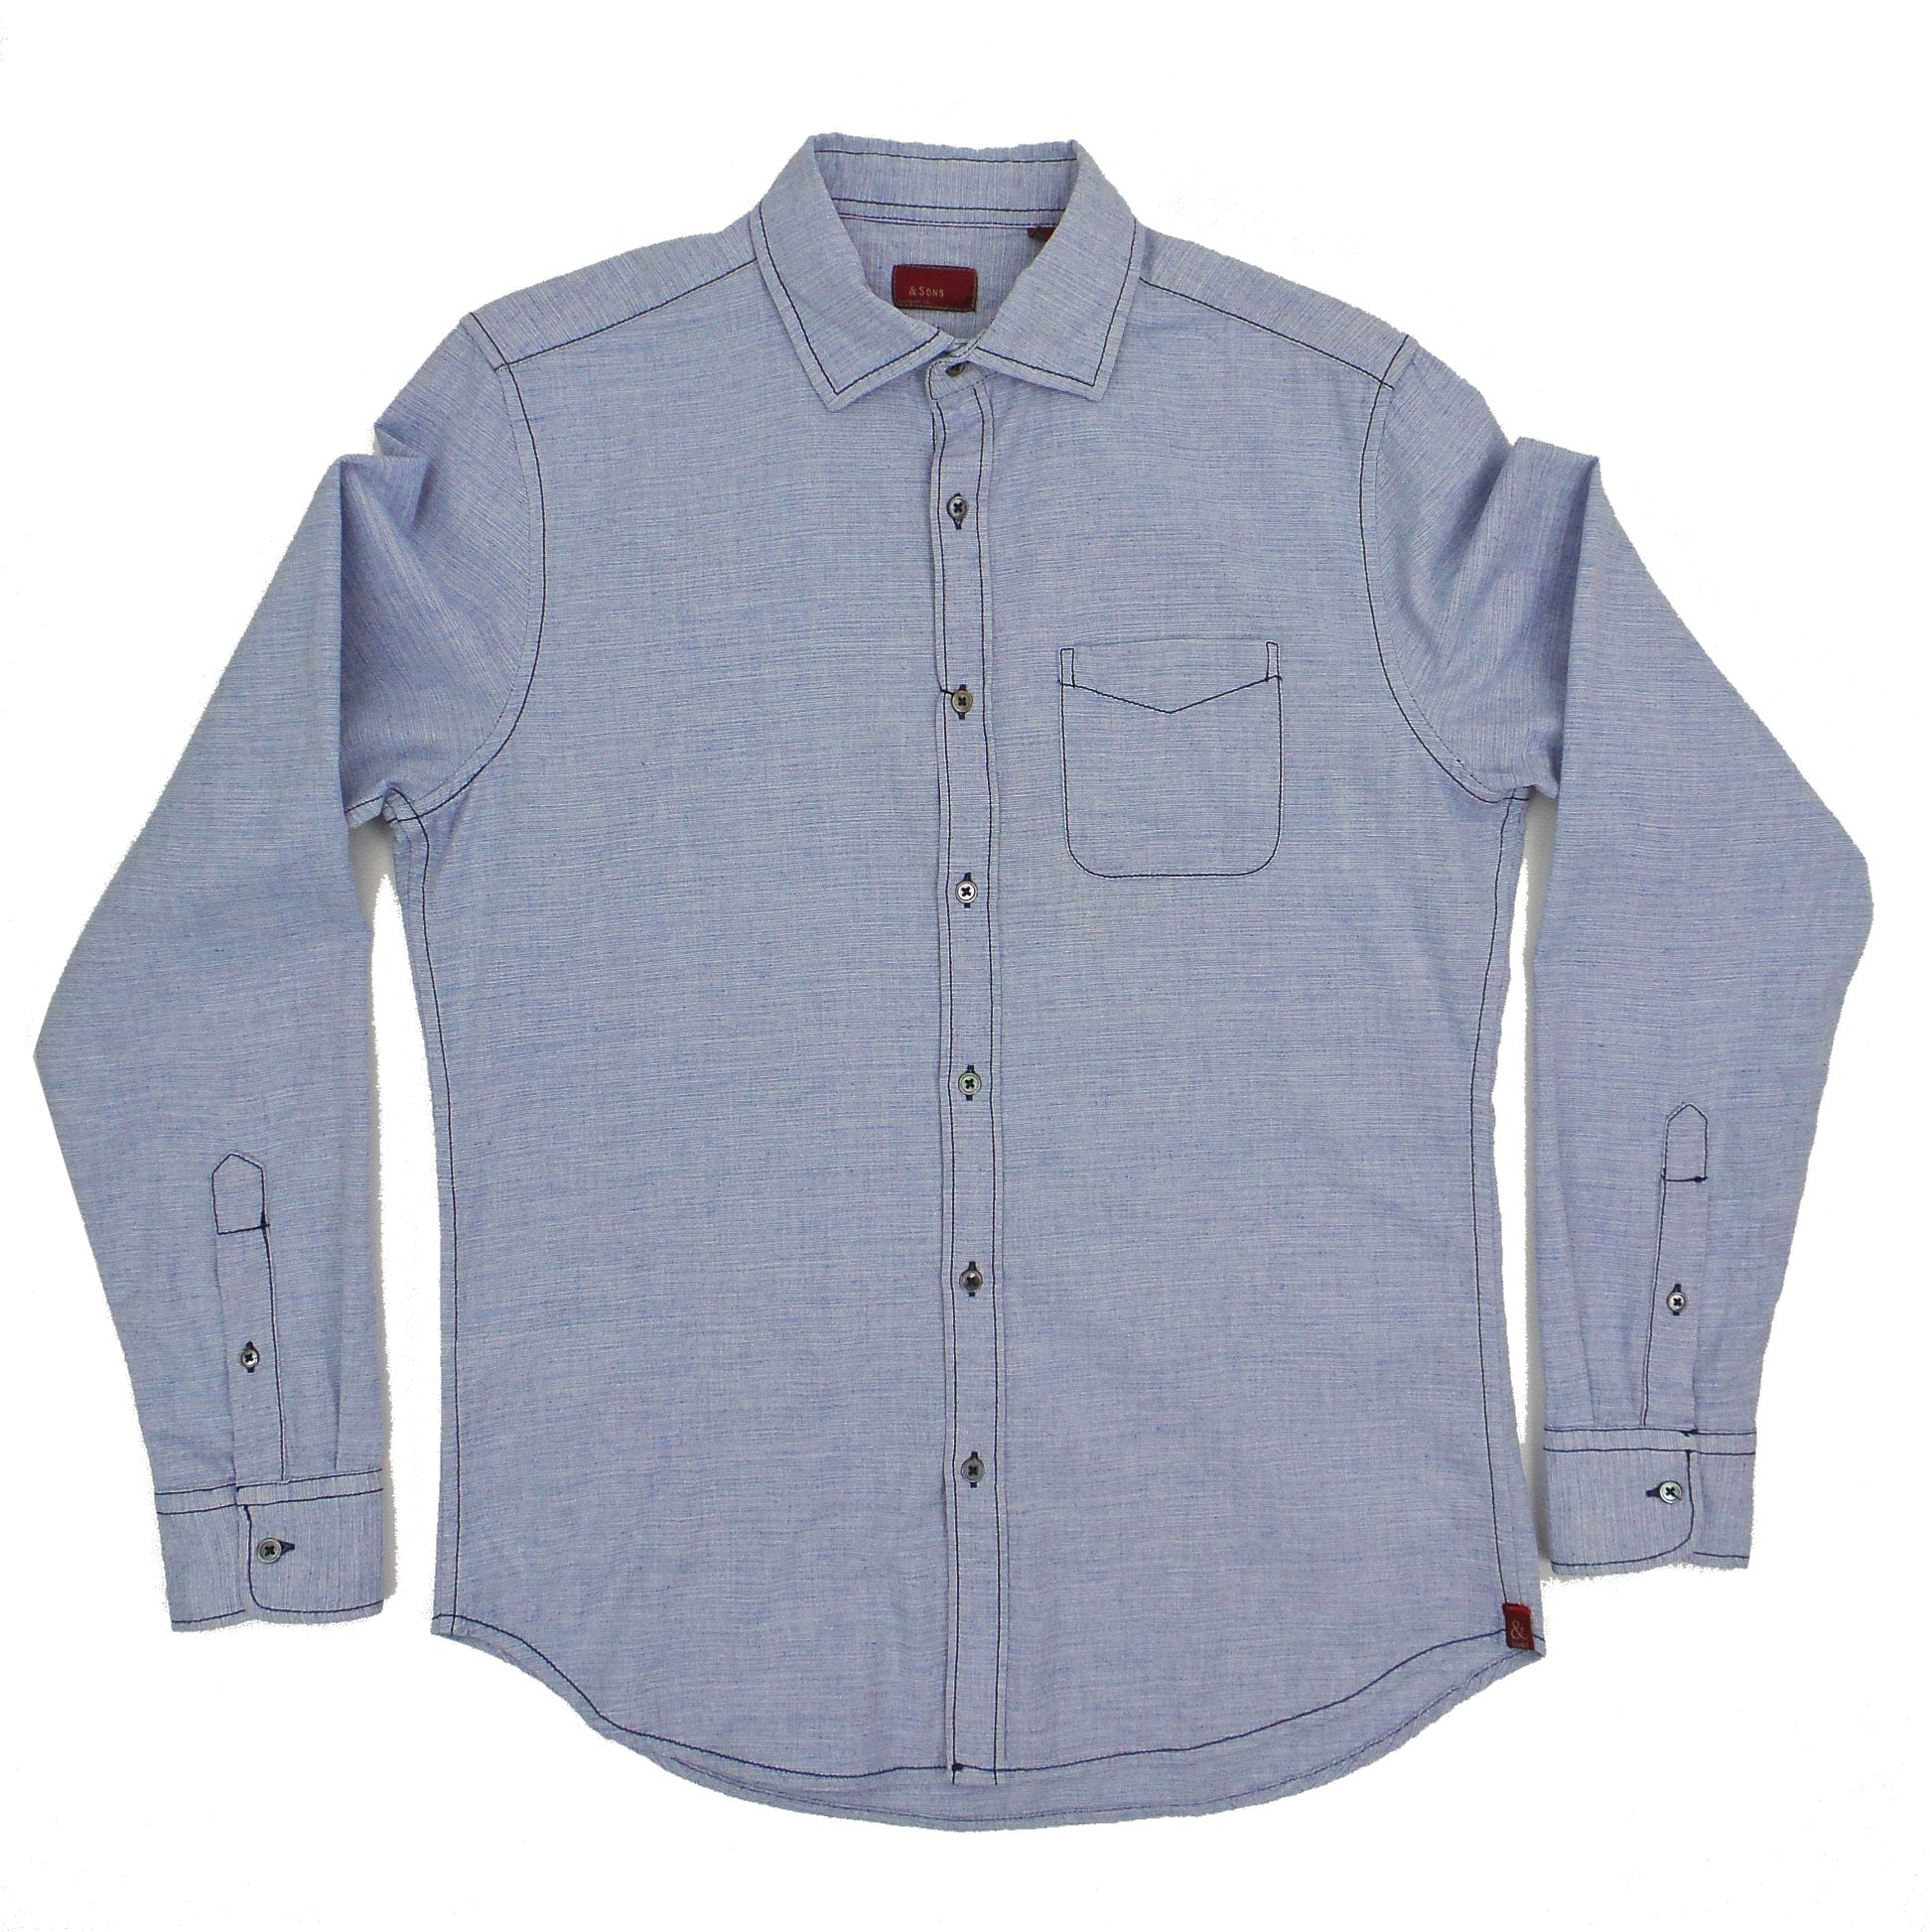 & Sons Garment Co. Heather Weave Soft Wash Shirt